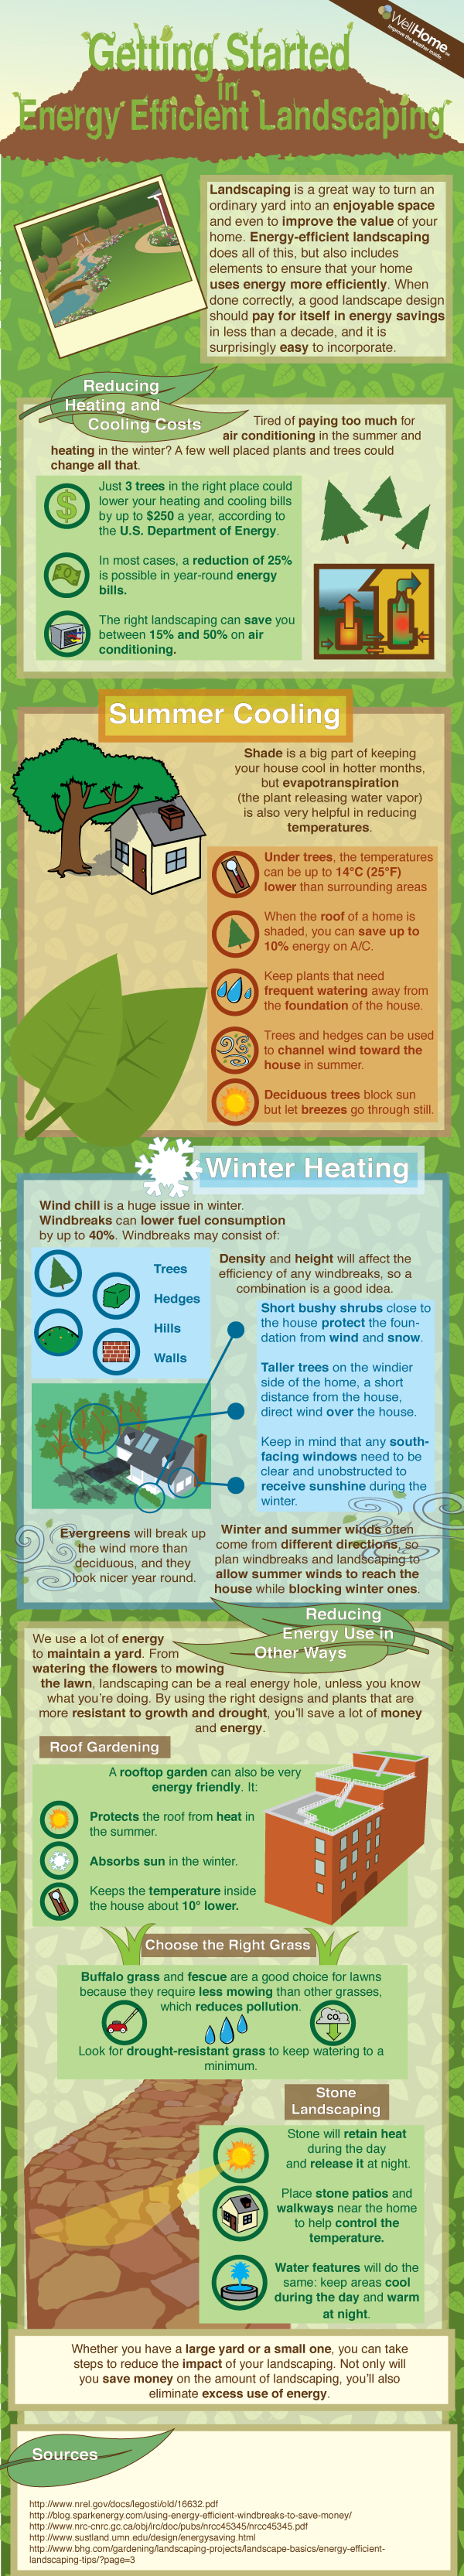 How To Create Energy-Efficient Landscapes